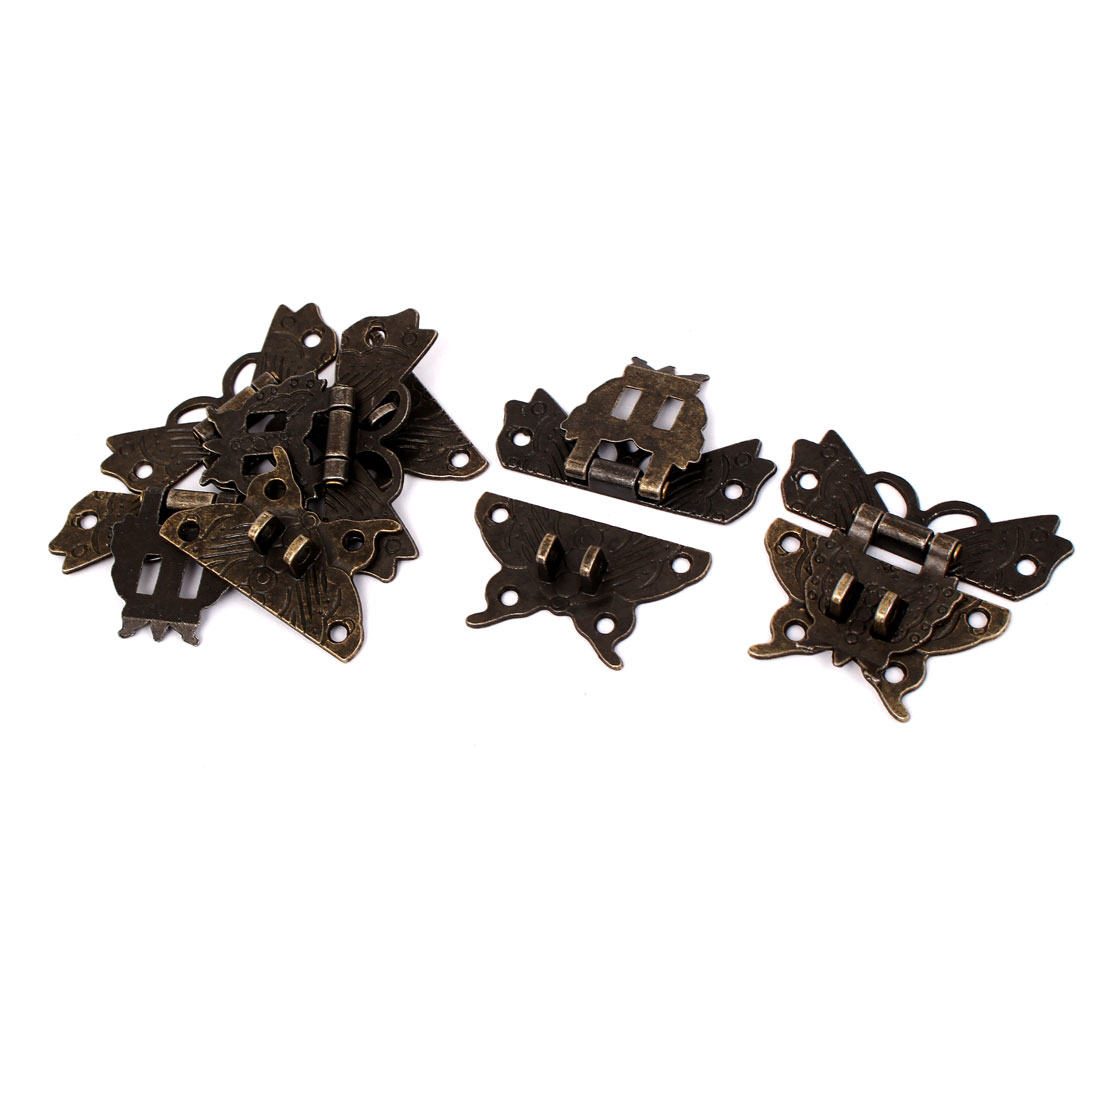 Vintage Style Wood Case Box Butterfly Shape Hasp Lock Latch Bronze Tone 5pcs